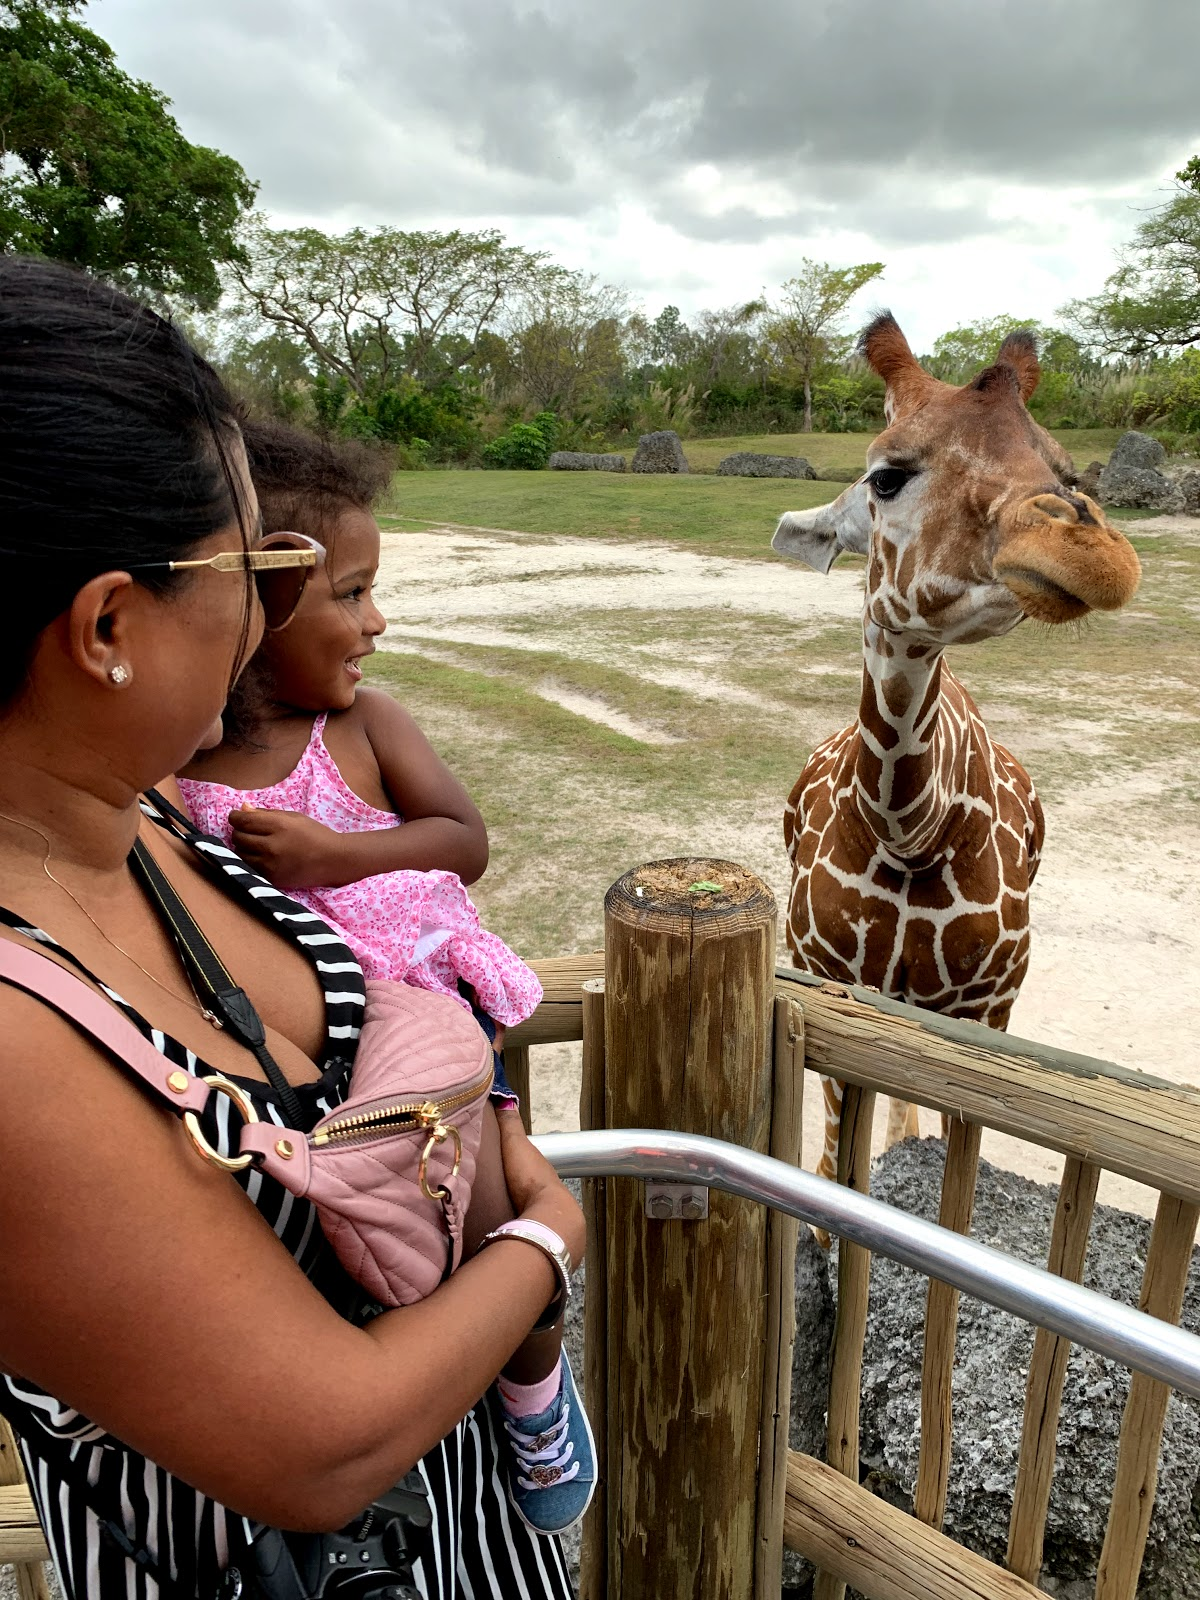 things to do with kids in miami, miami zoo, feeding the giraffes